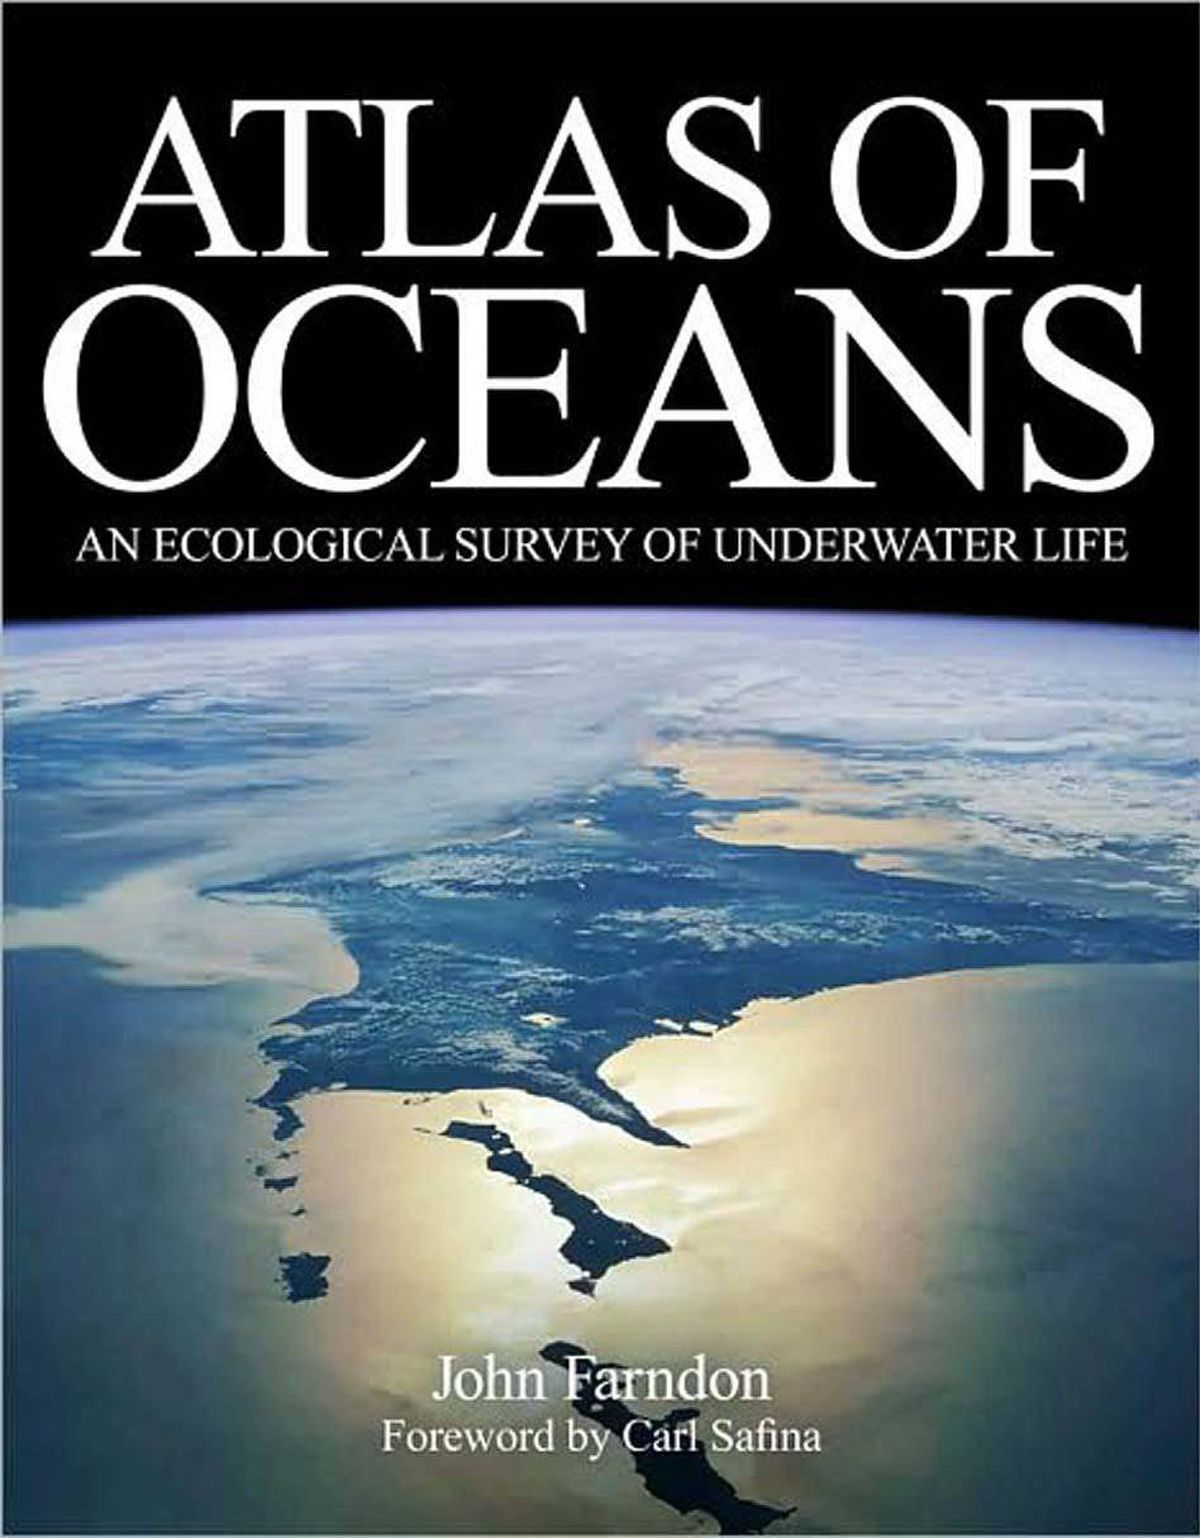 ATLAS OF OCEANS By John Farndon (Yale University Press, 256 pages, $50) A brilliant, lavishly illustrated and timely account of the evolution of the world's marine bodies of water and the ecological disaster that is unfolding underneath, within and around them. Skillfully written for a general audience, the book reminds us we can not survive without healthy seas, and delivers a persuasive wake-up call.